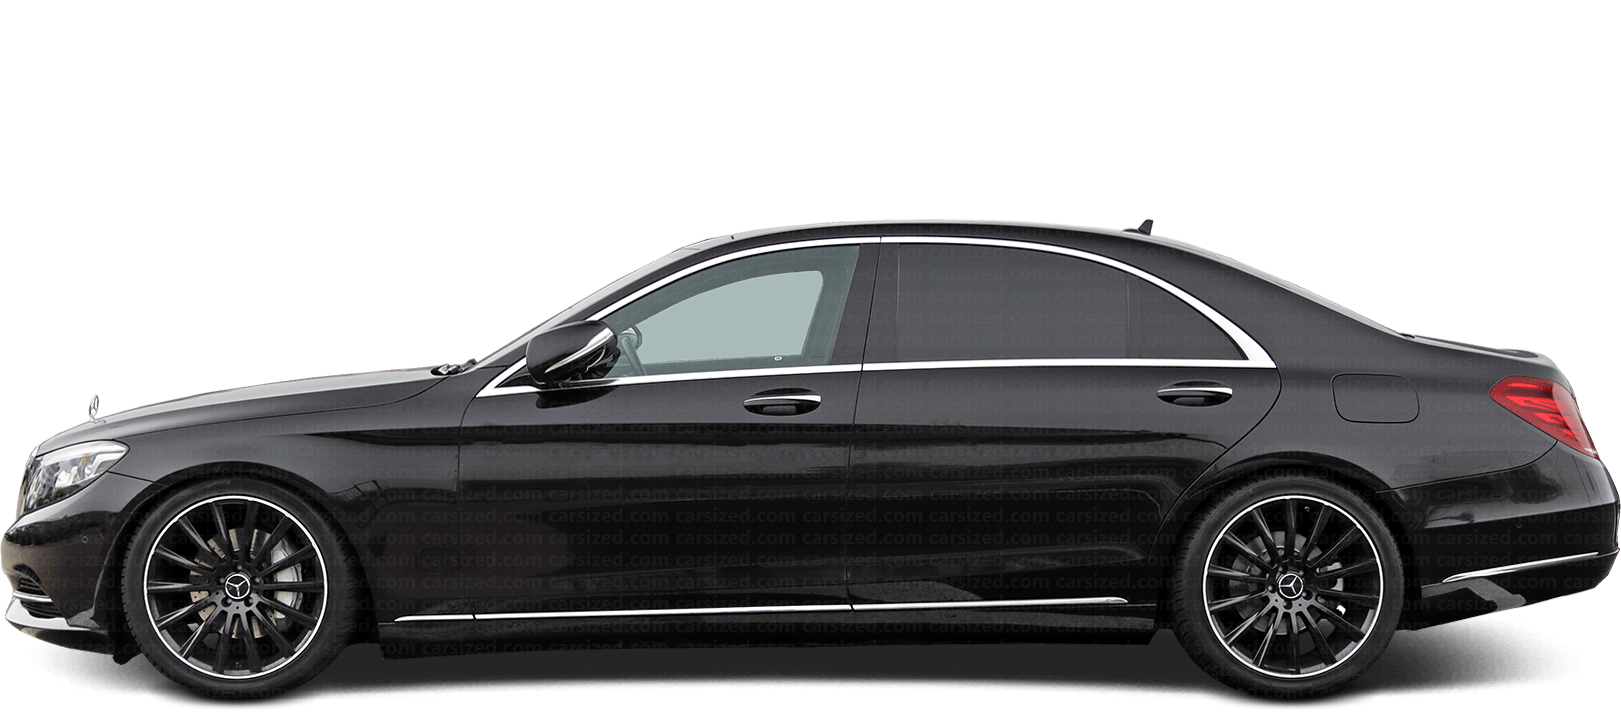 Mercedes-Benz S-Class Sedan LWB  2013 - 2020